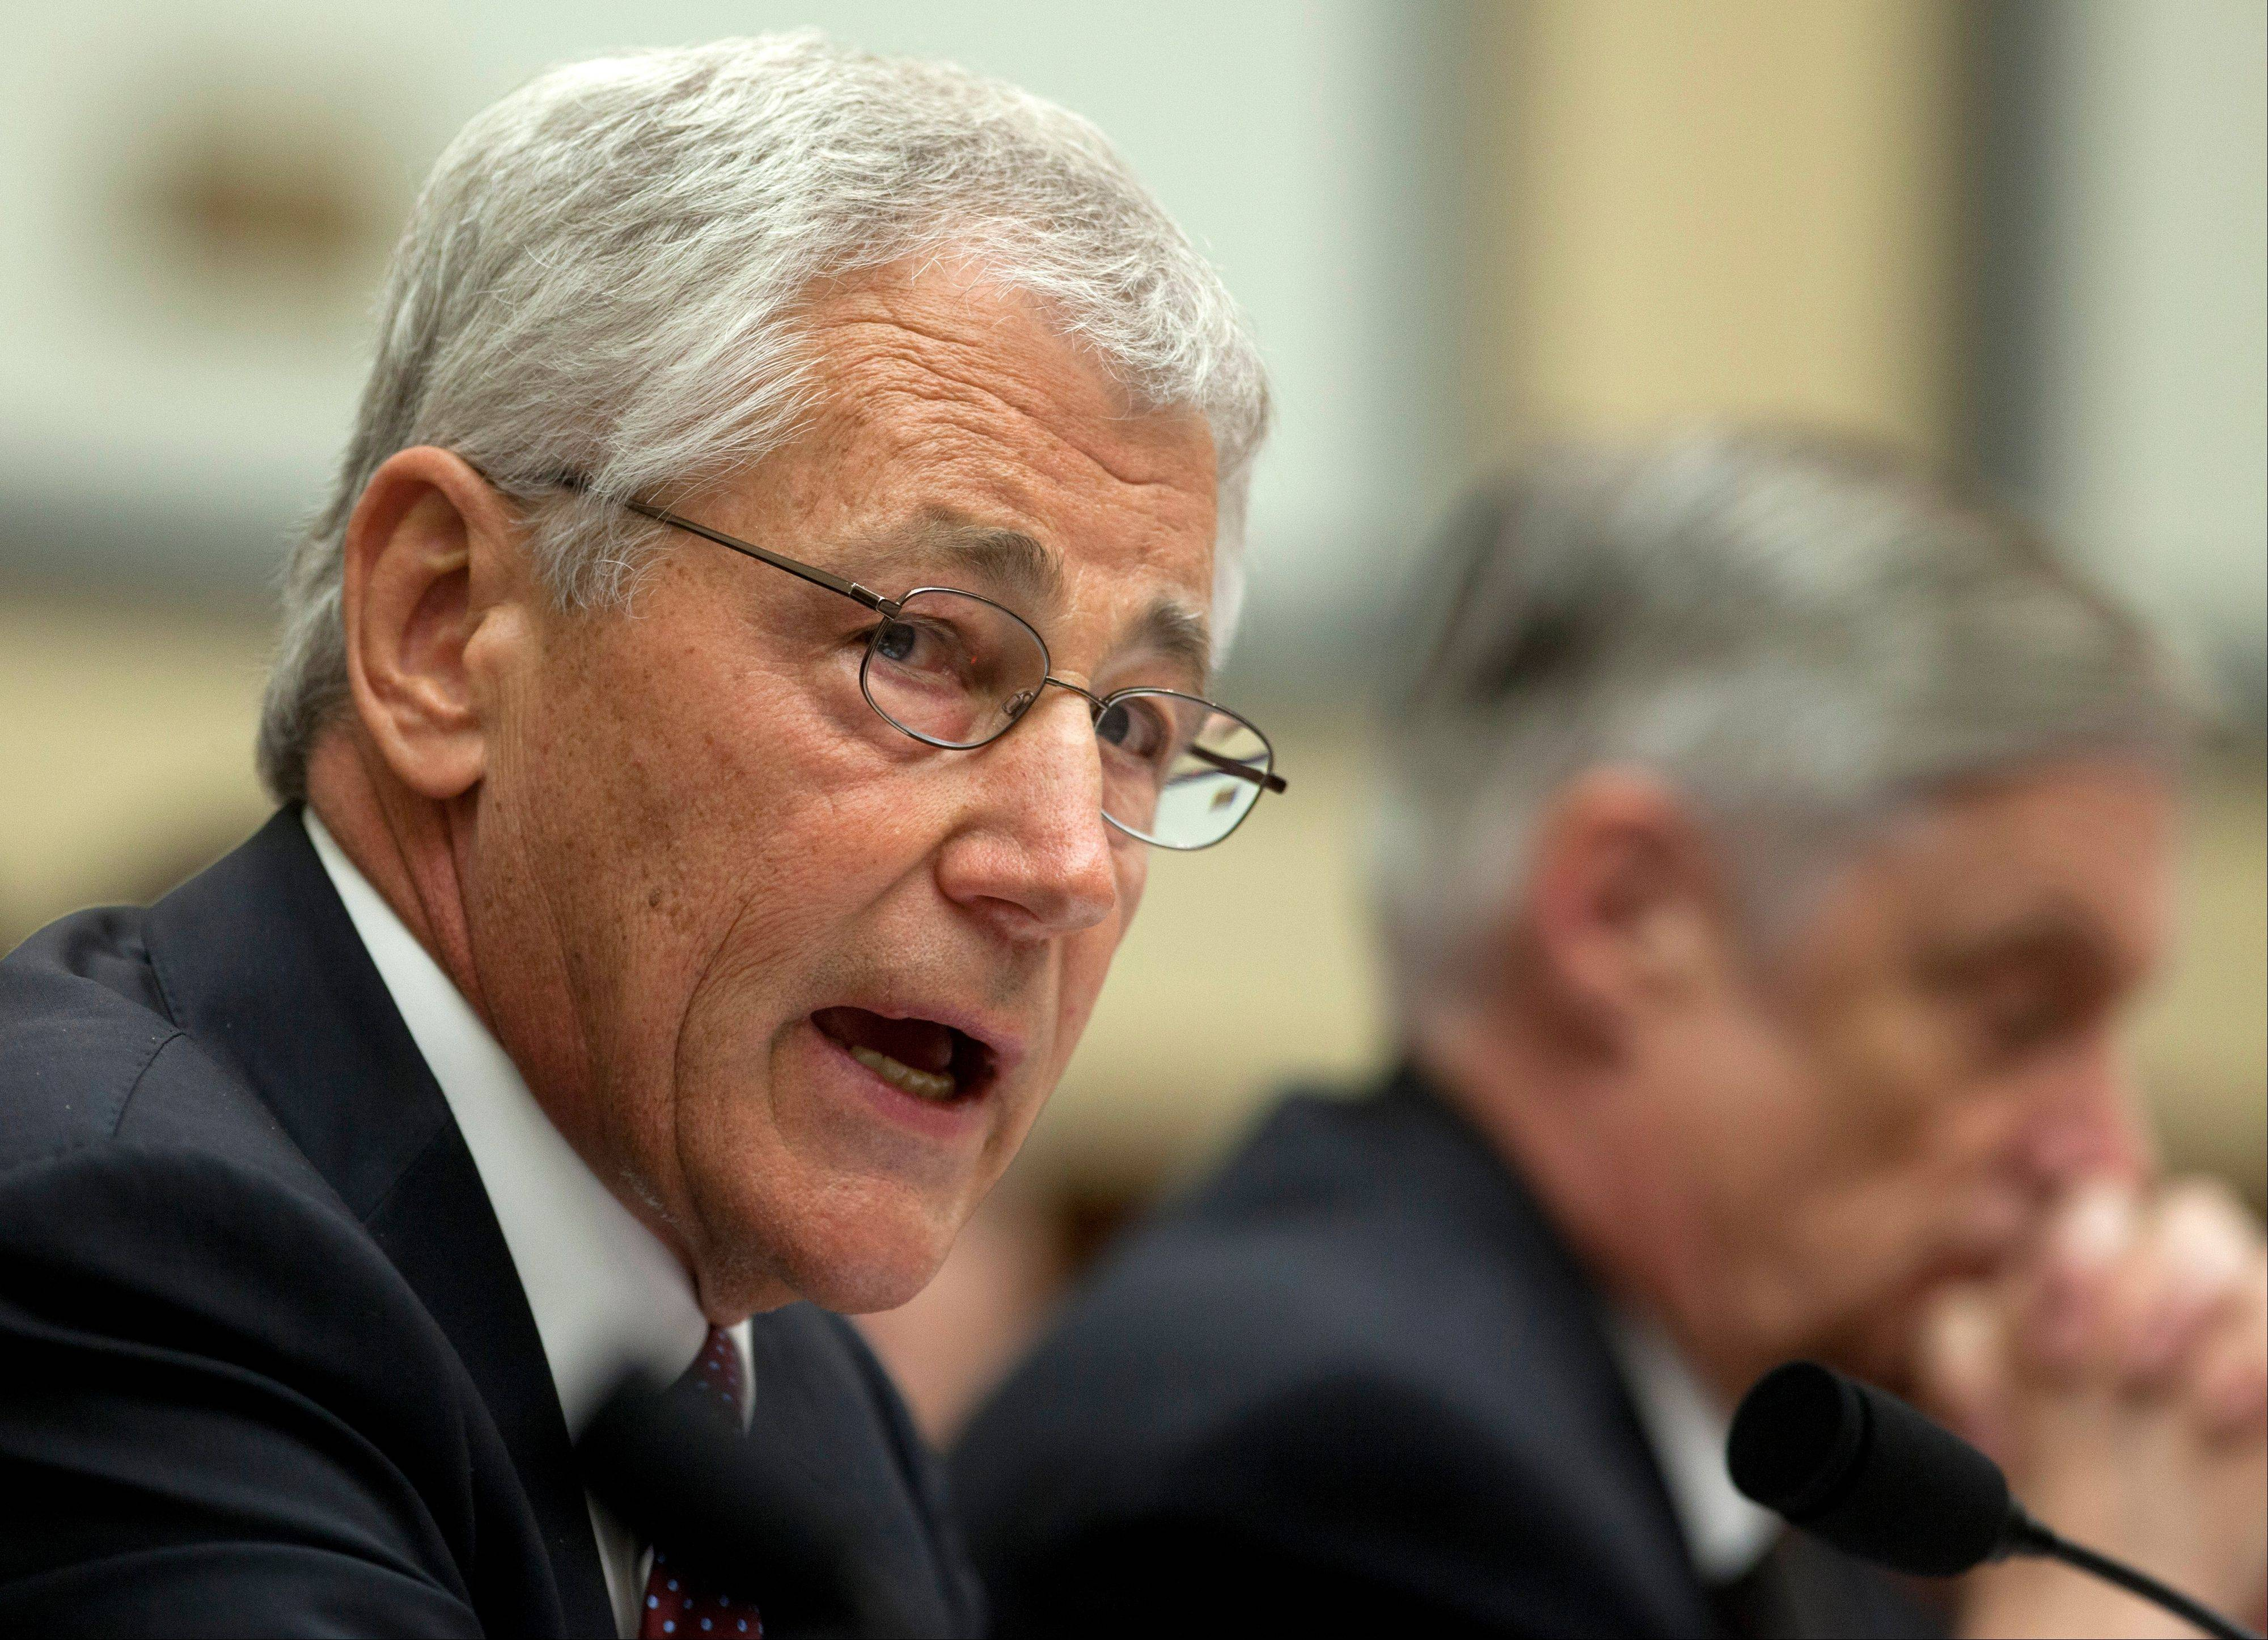 Defense Secretary Chuck Hagel, left, testifies on Capitol Hill in Washington, Thursday, April 11, 2013, before the House Armed Services Committee hearing on the Defense Department's fiscal 2014 National Defense Authorization Budget Request. At right is Defense Undersecretary, Comptroller Robert F. Hale.